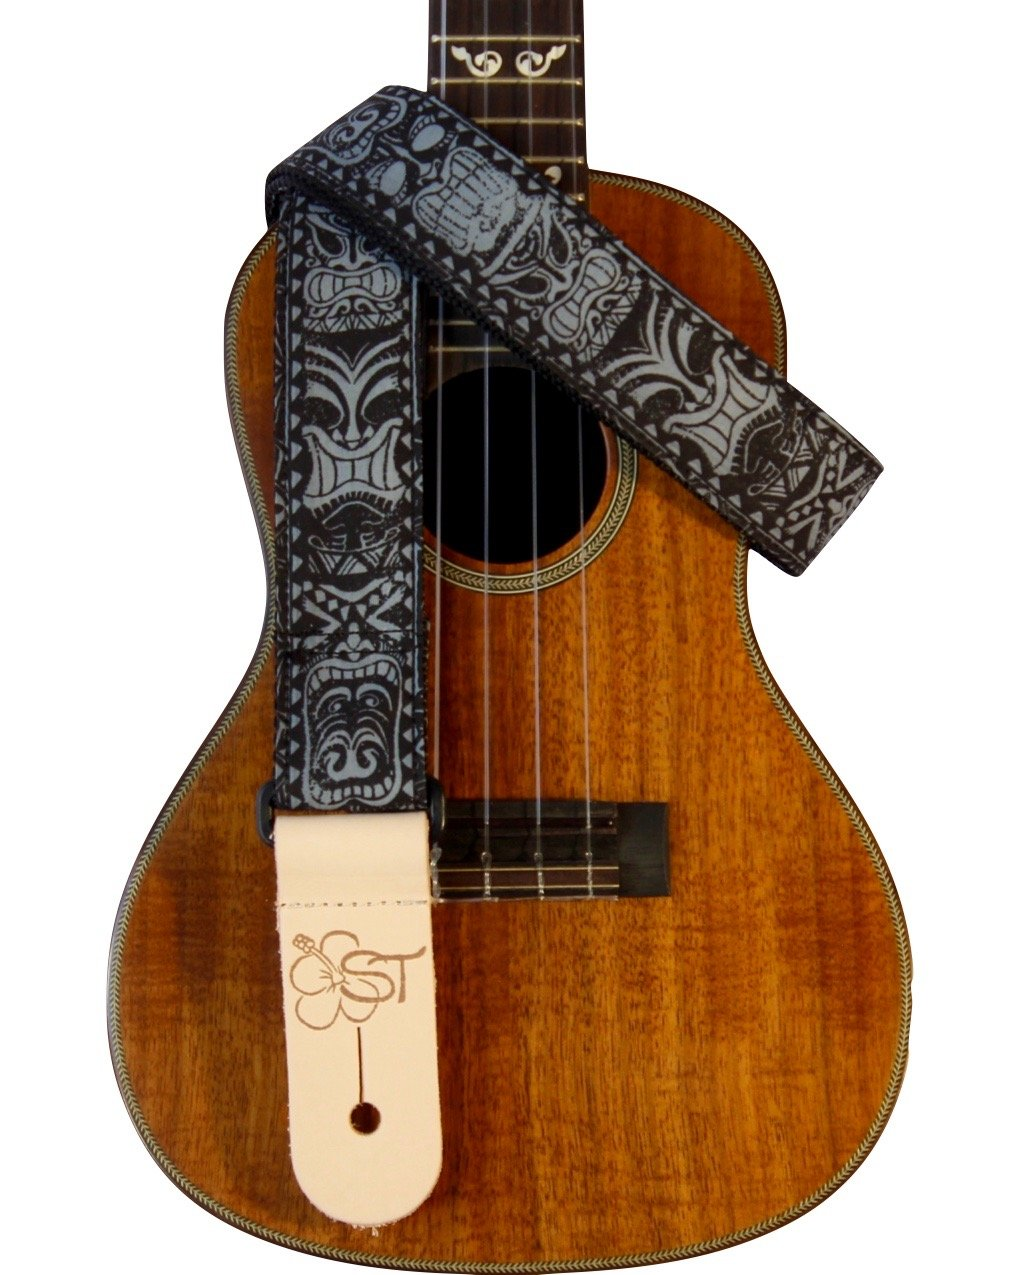 Sherrin's Threads 1.5 Hawaiian Print Ukulele Strap - Black Tiki